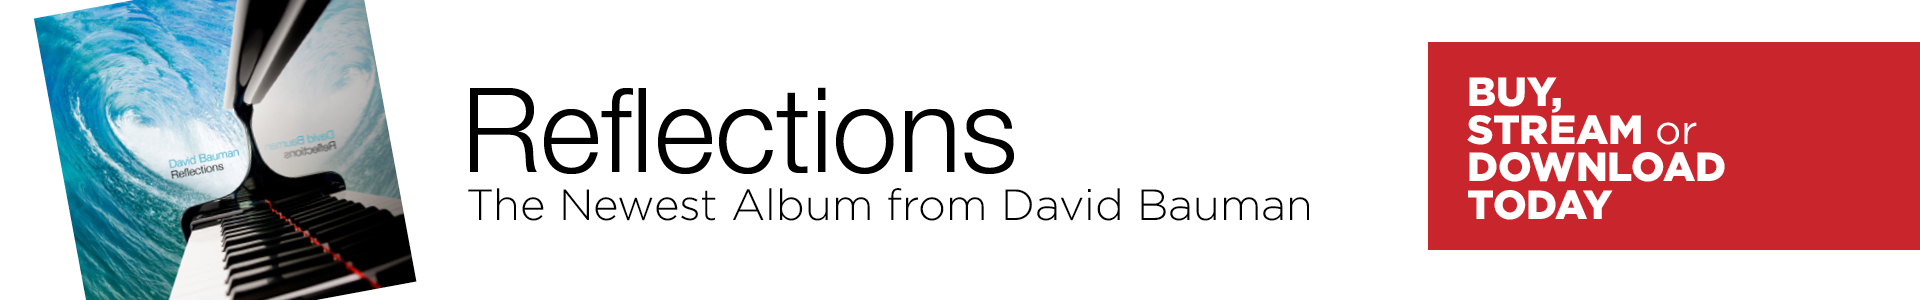 Reflections: The Newest Album from David Bauman